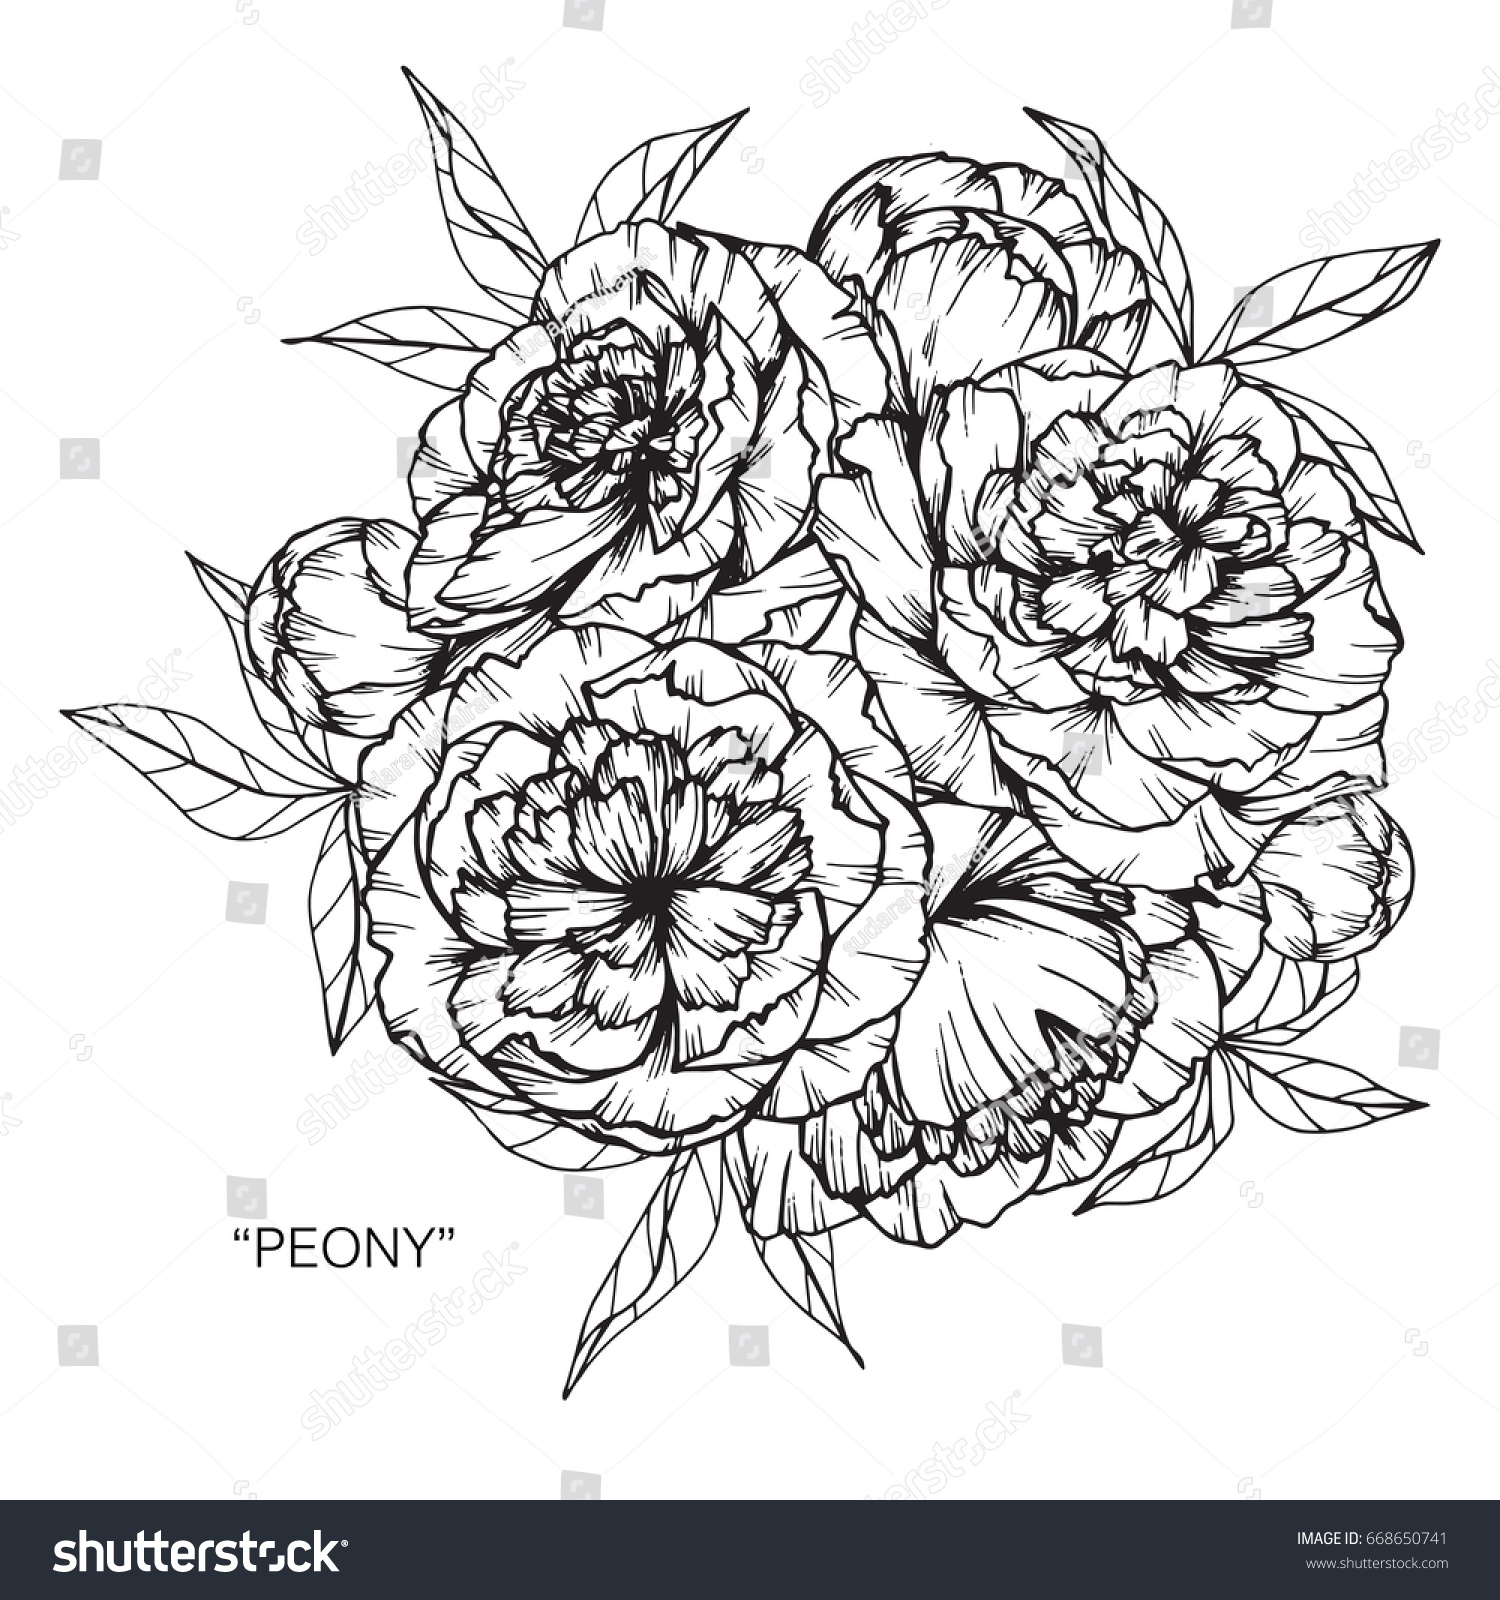 Bouquet Of Peony Flowers Drawing And Sketch With Line Art On White